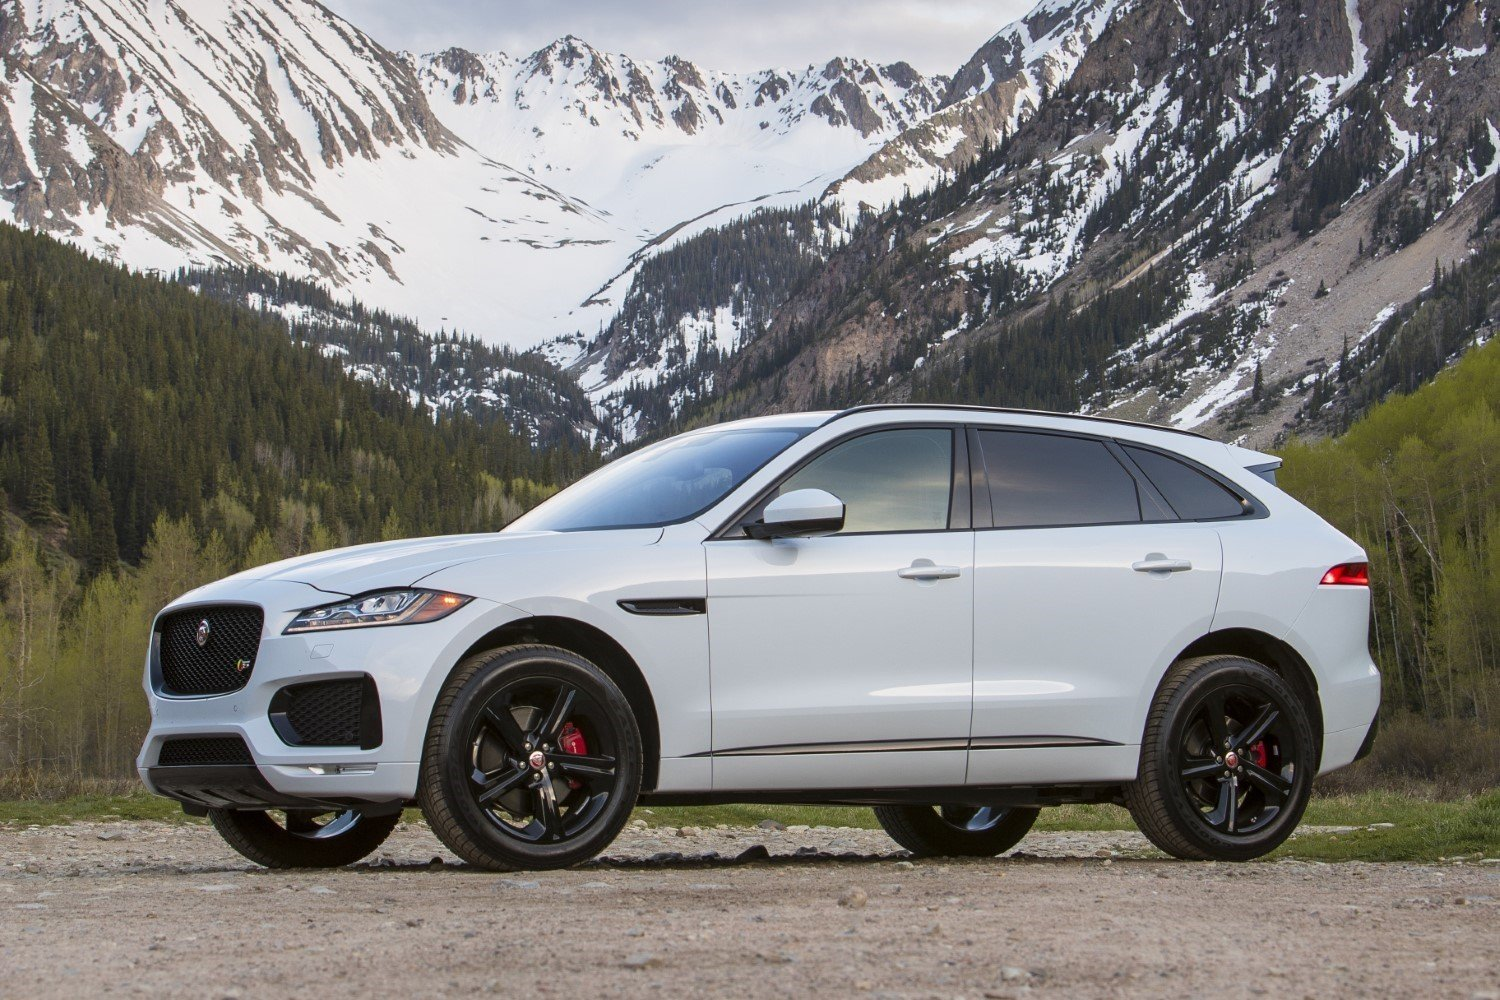 2018 Jaguar F-Pace SUV Specs, Review, and Pricing   CarSession